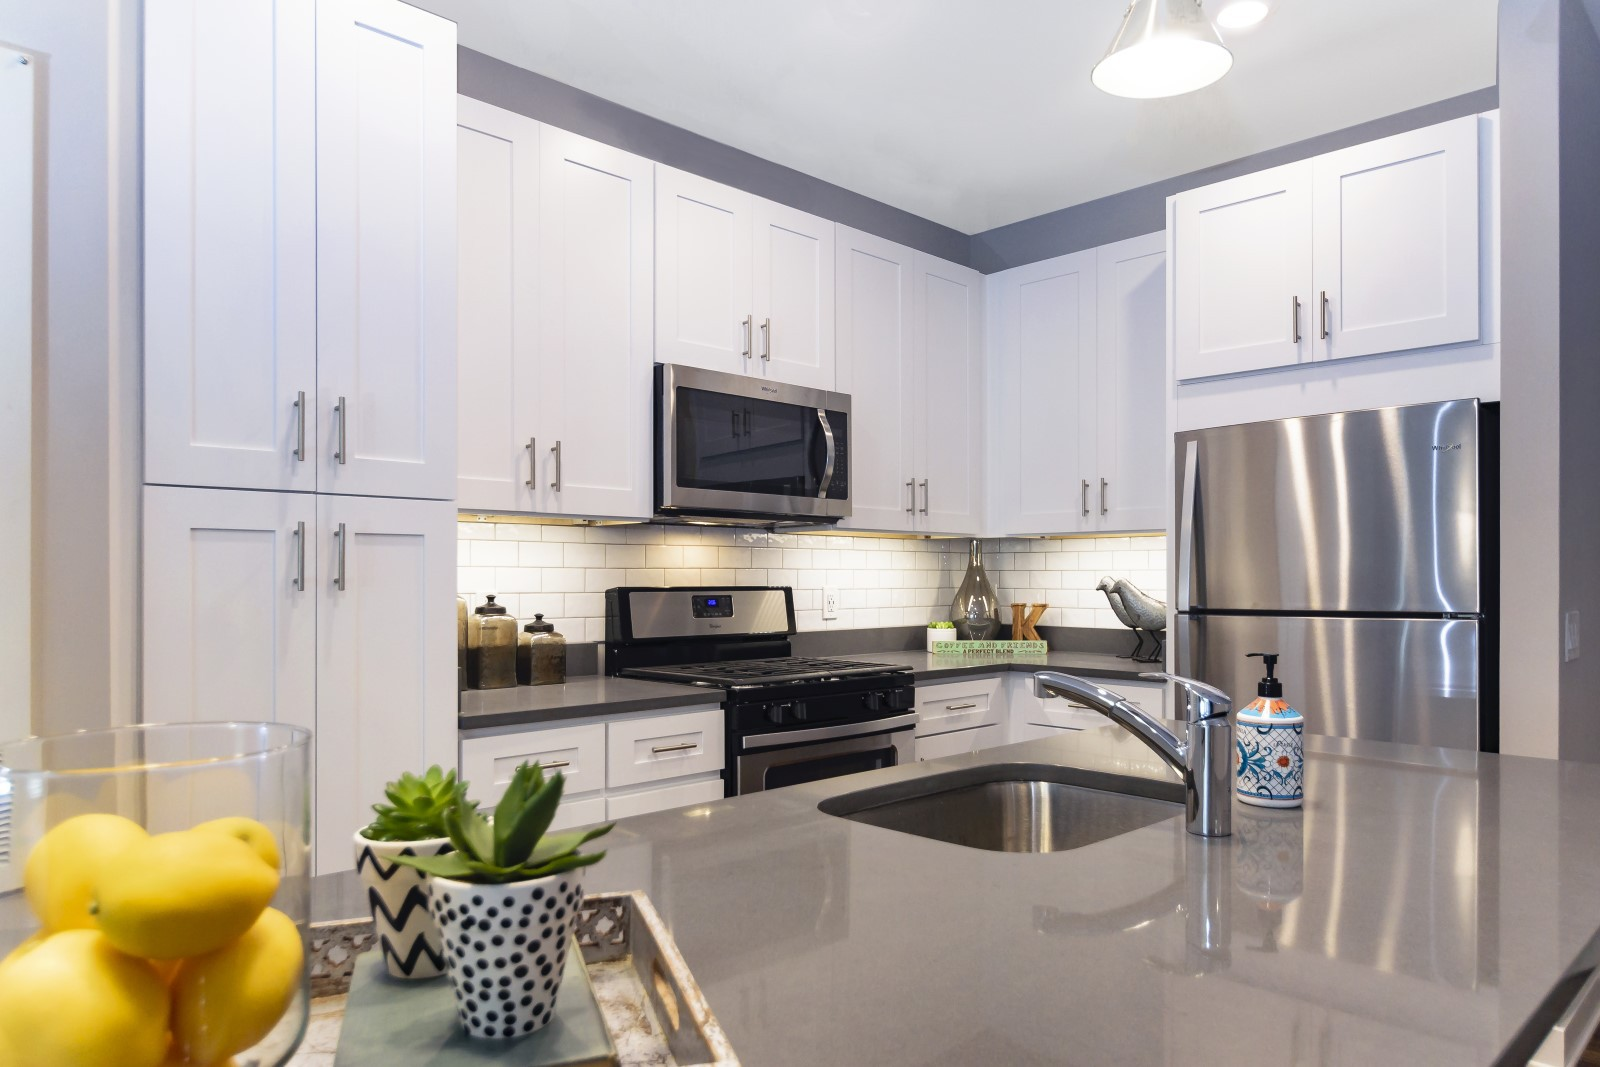 Apartments Near Immaculata Keva Flats for Immaculata University Students in Immaculata, PA